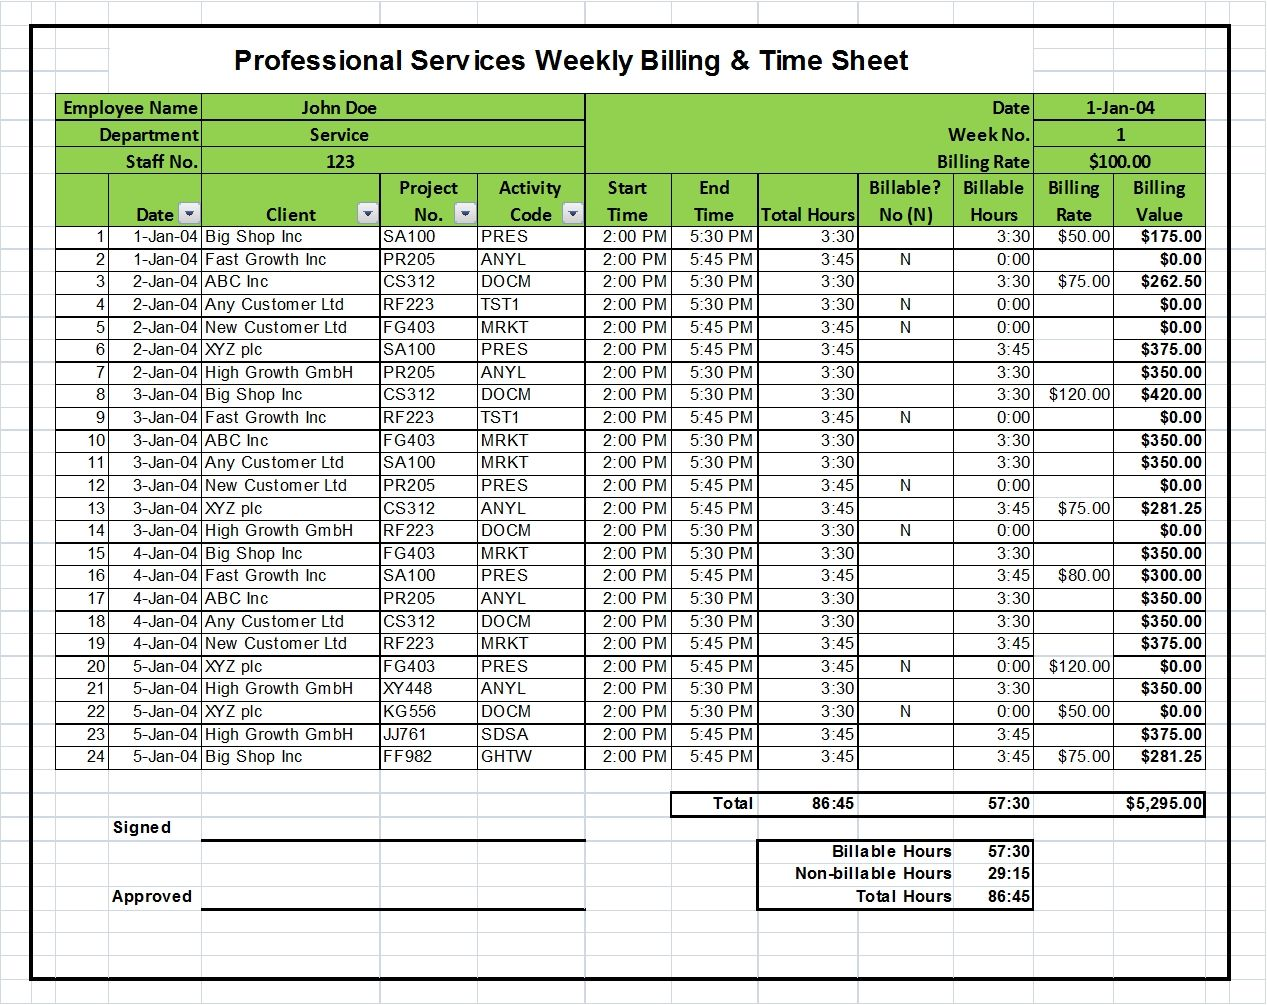 Excel billing timesheet templates for professional services excel billing timesheet templates for professional services projects alramifo Image collections